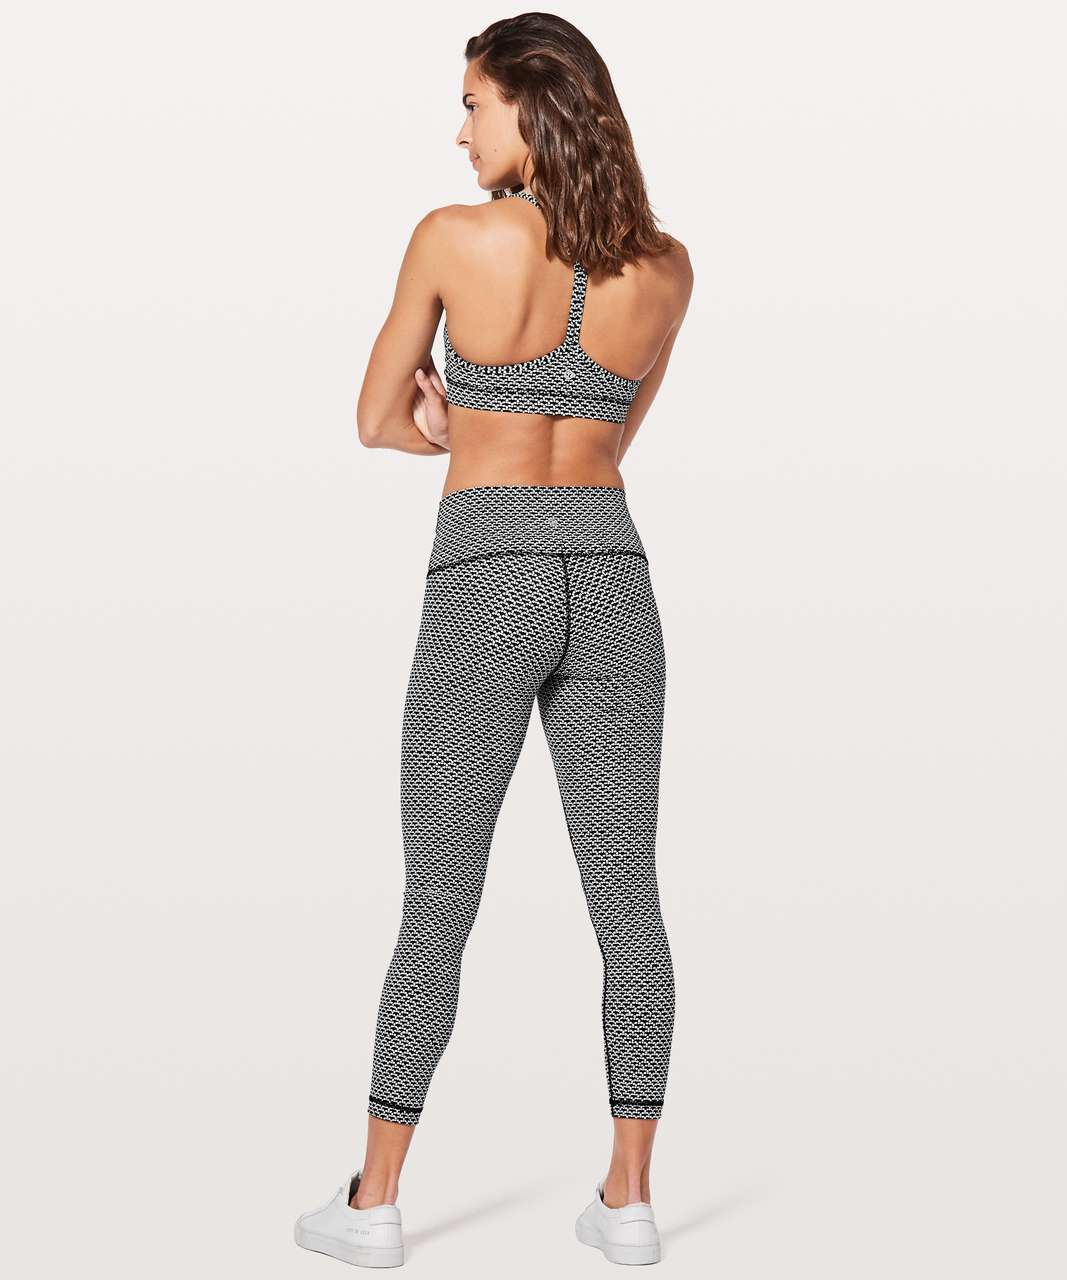 "Lululemon Wunder Under Hi-Rise 7/8 Tight *Full-On Luxtreme 25"" - Monochromic Black"